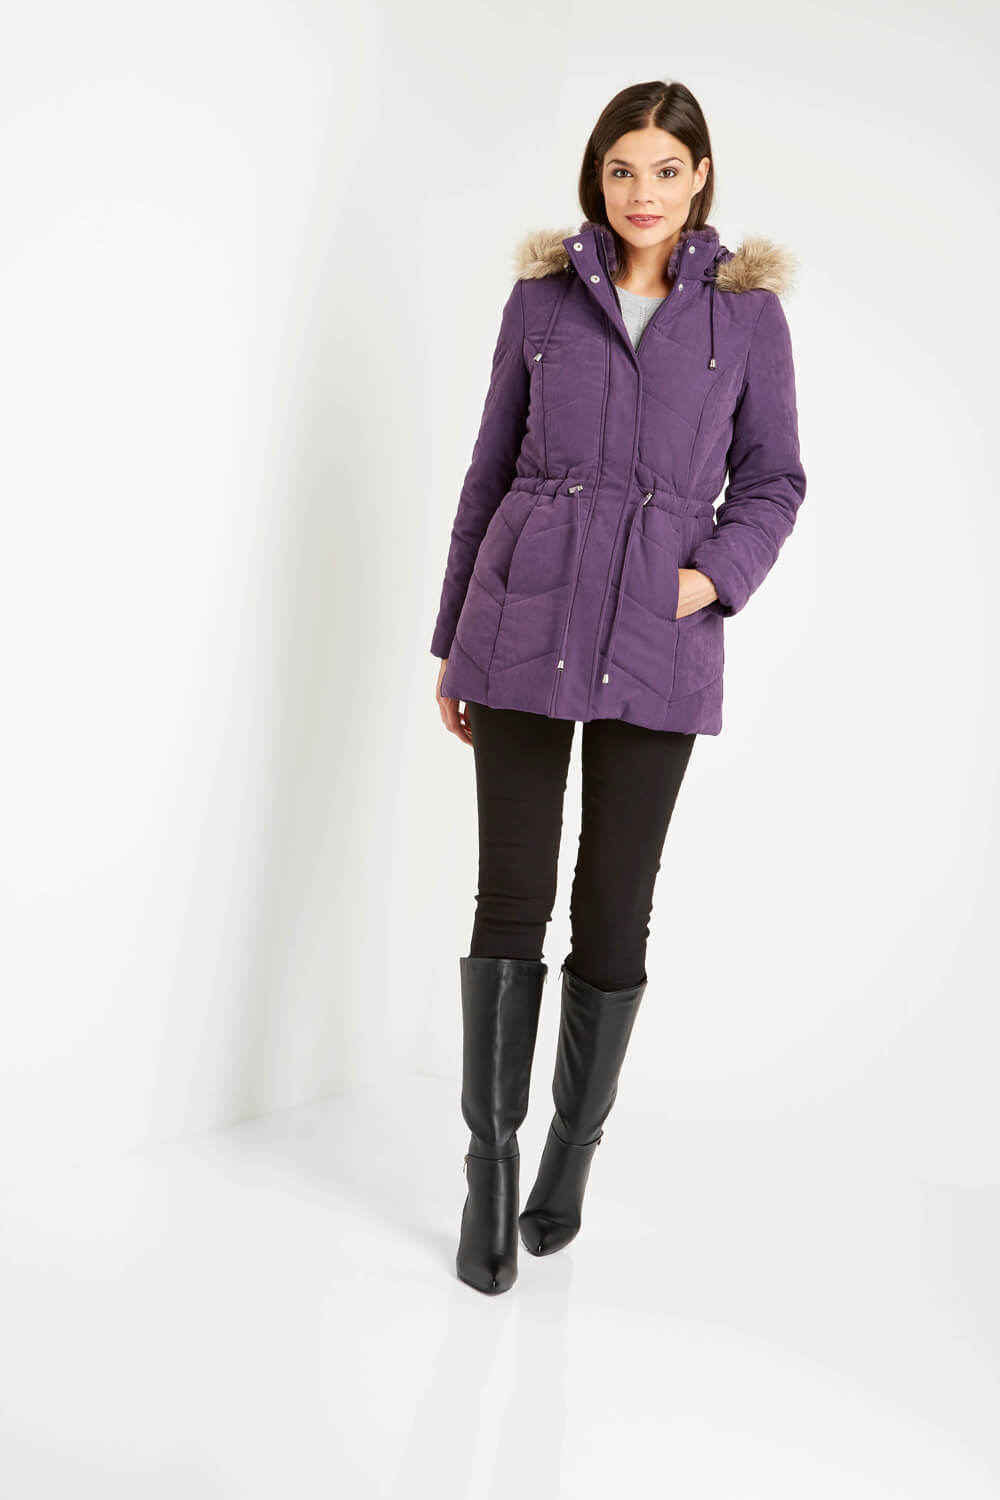 Roman-Originals-Women-039-s-Blue-Quilted-Parka-Coat-with-Hood-Sizes-10-20 thumbnail 24